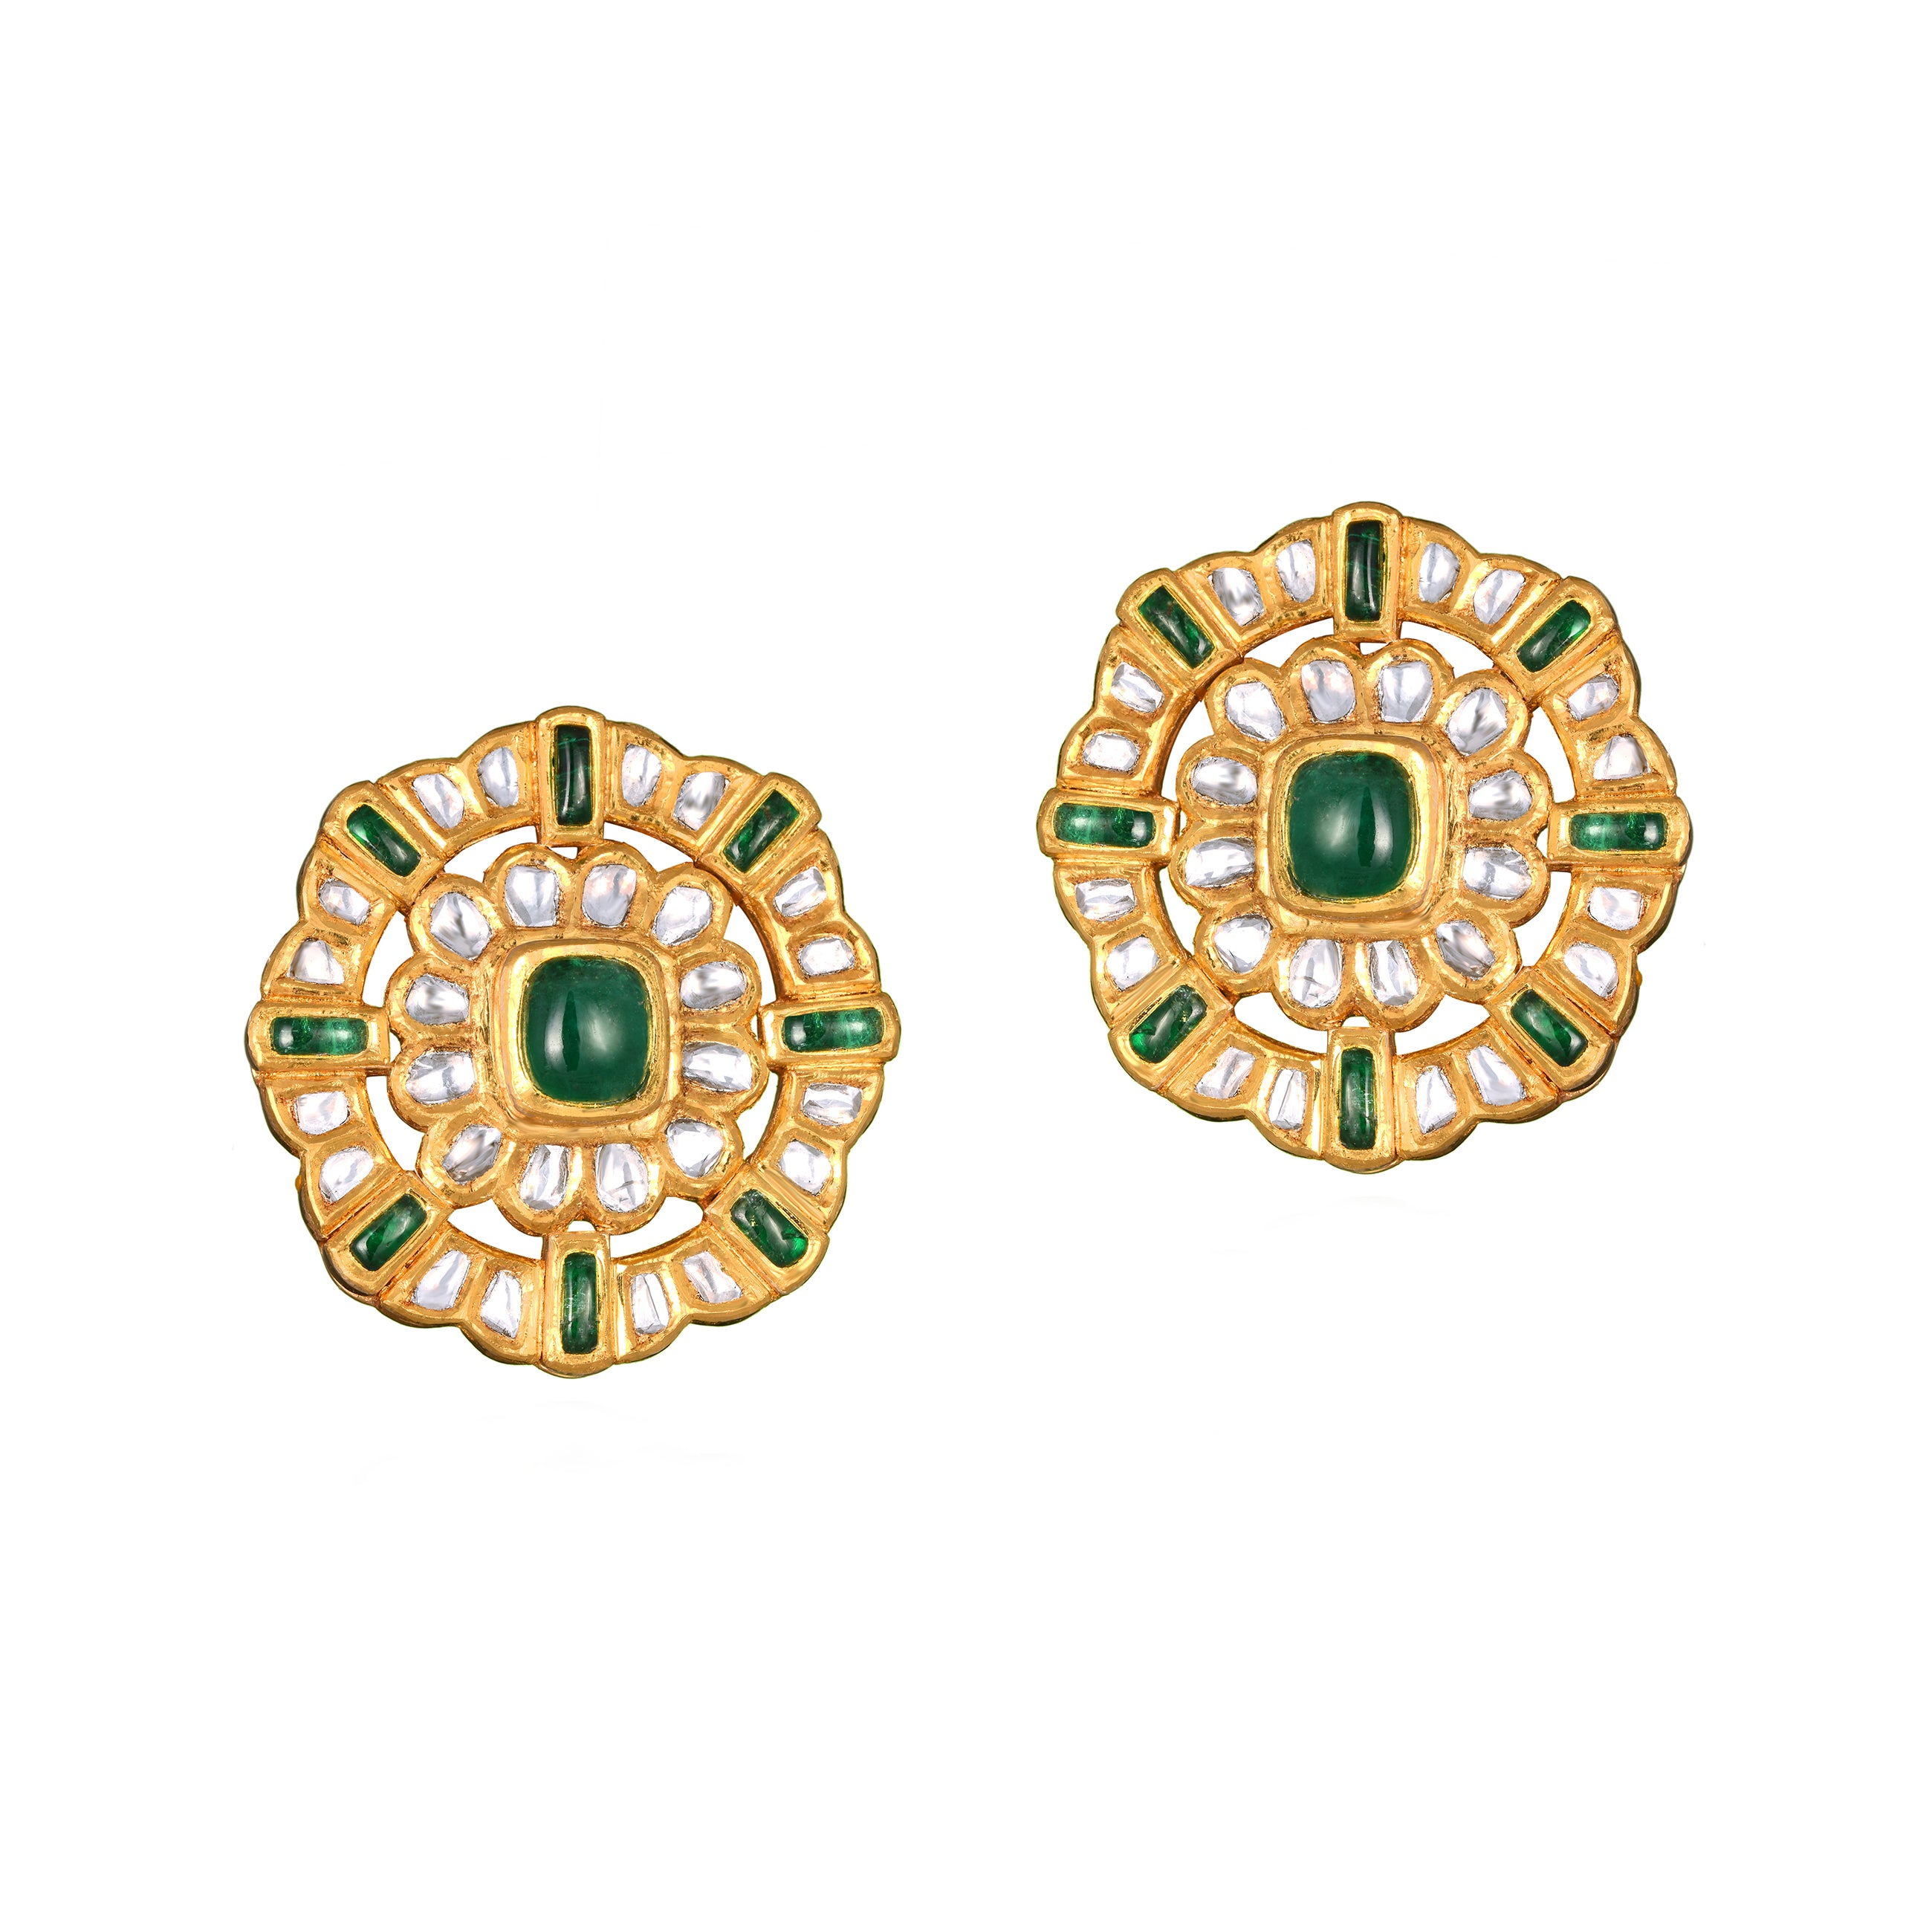 Uncut Diamond and Emerald Studs